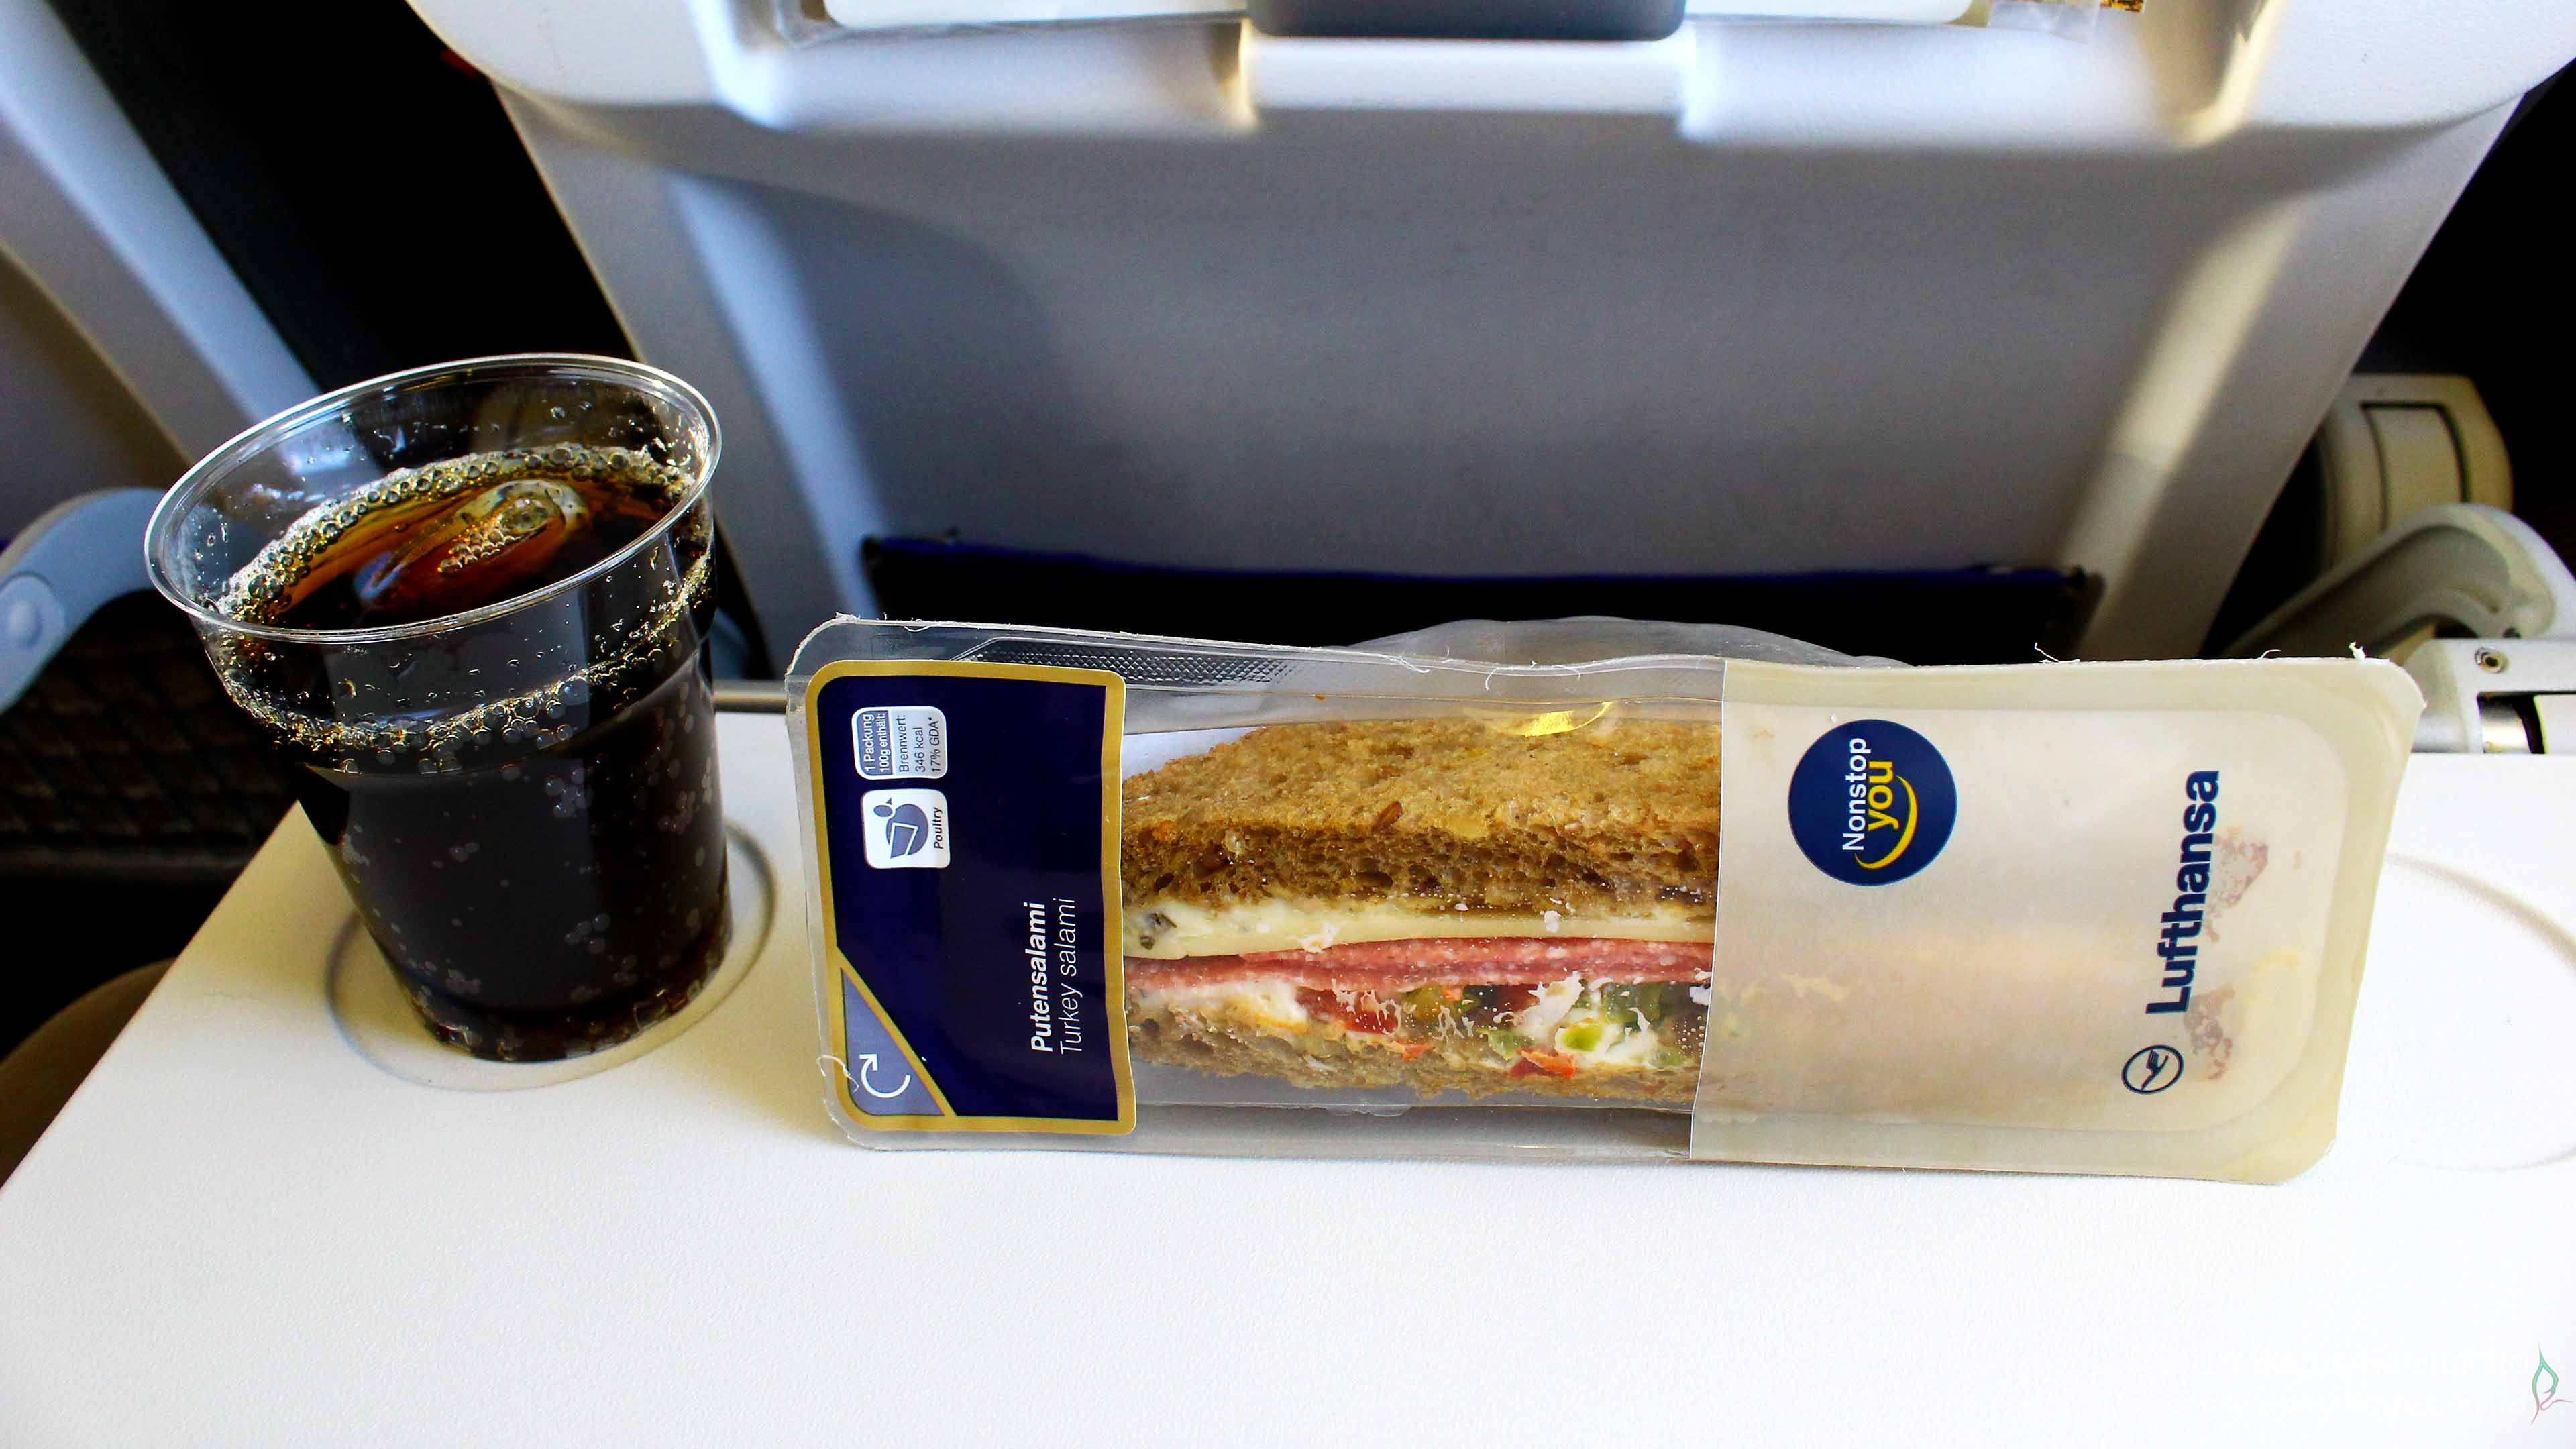 Small snack during my flight from GVA to FRA.